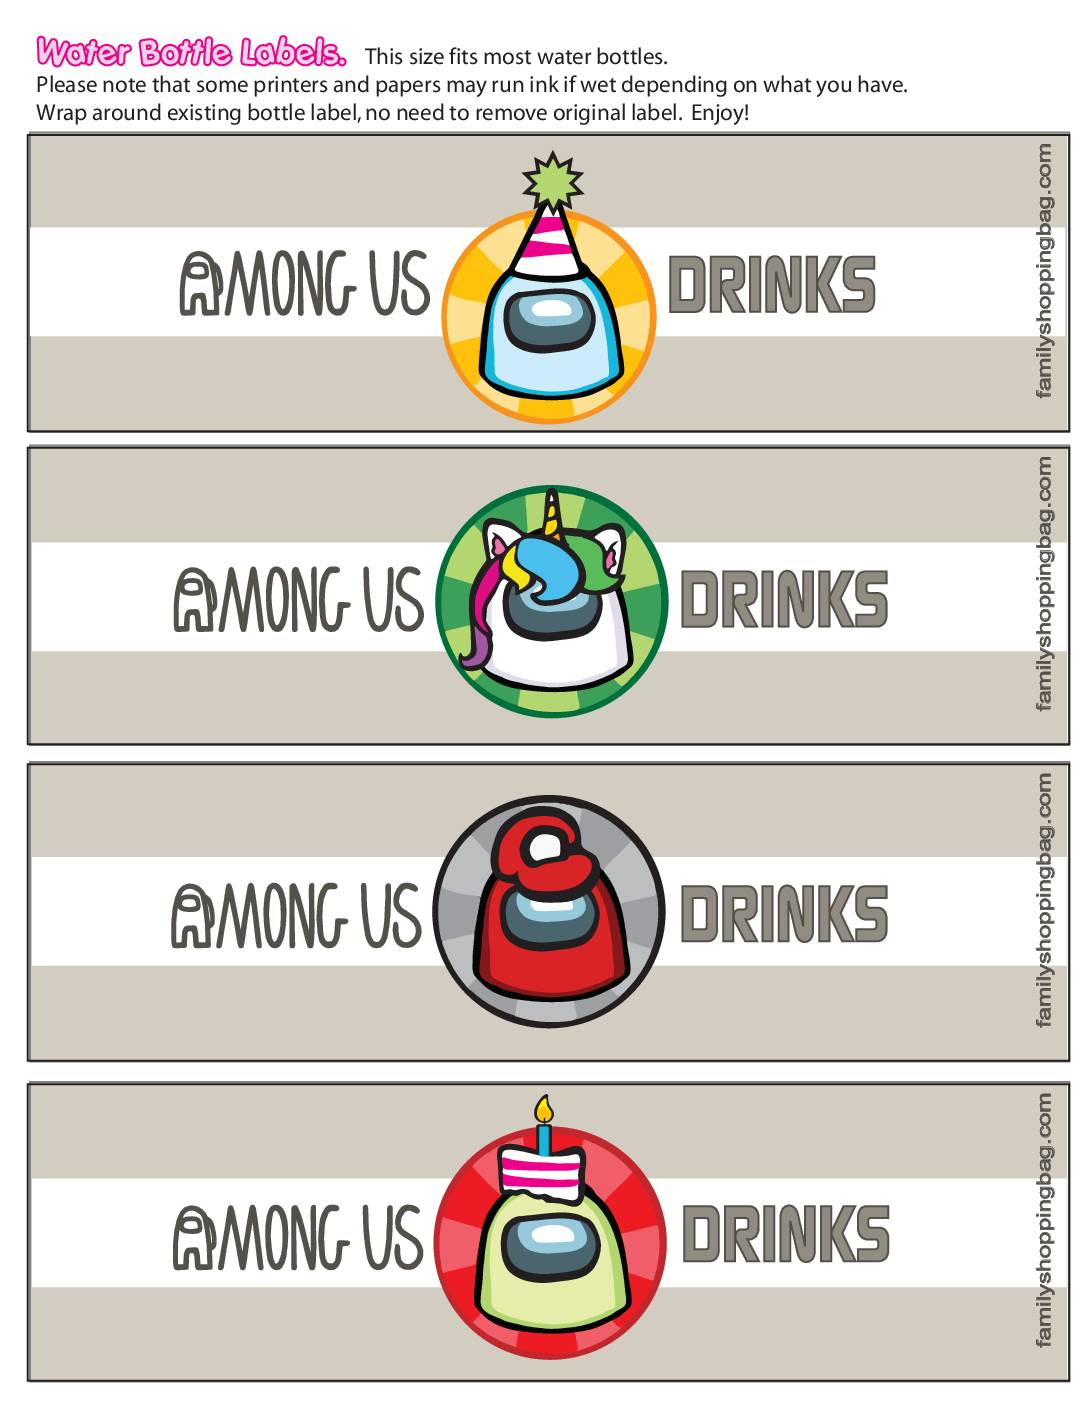 Water Bottle Labels Among US